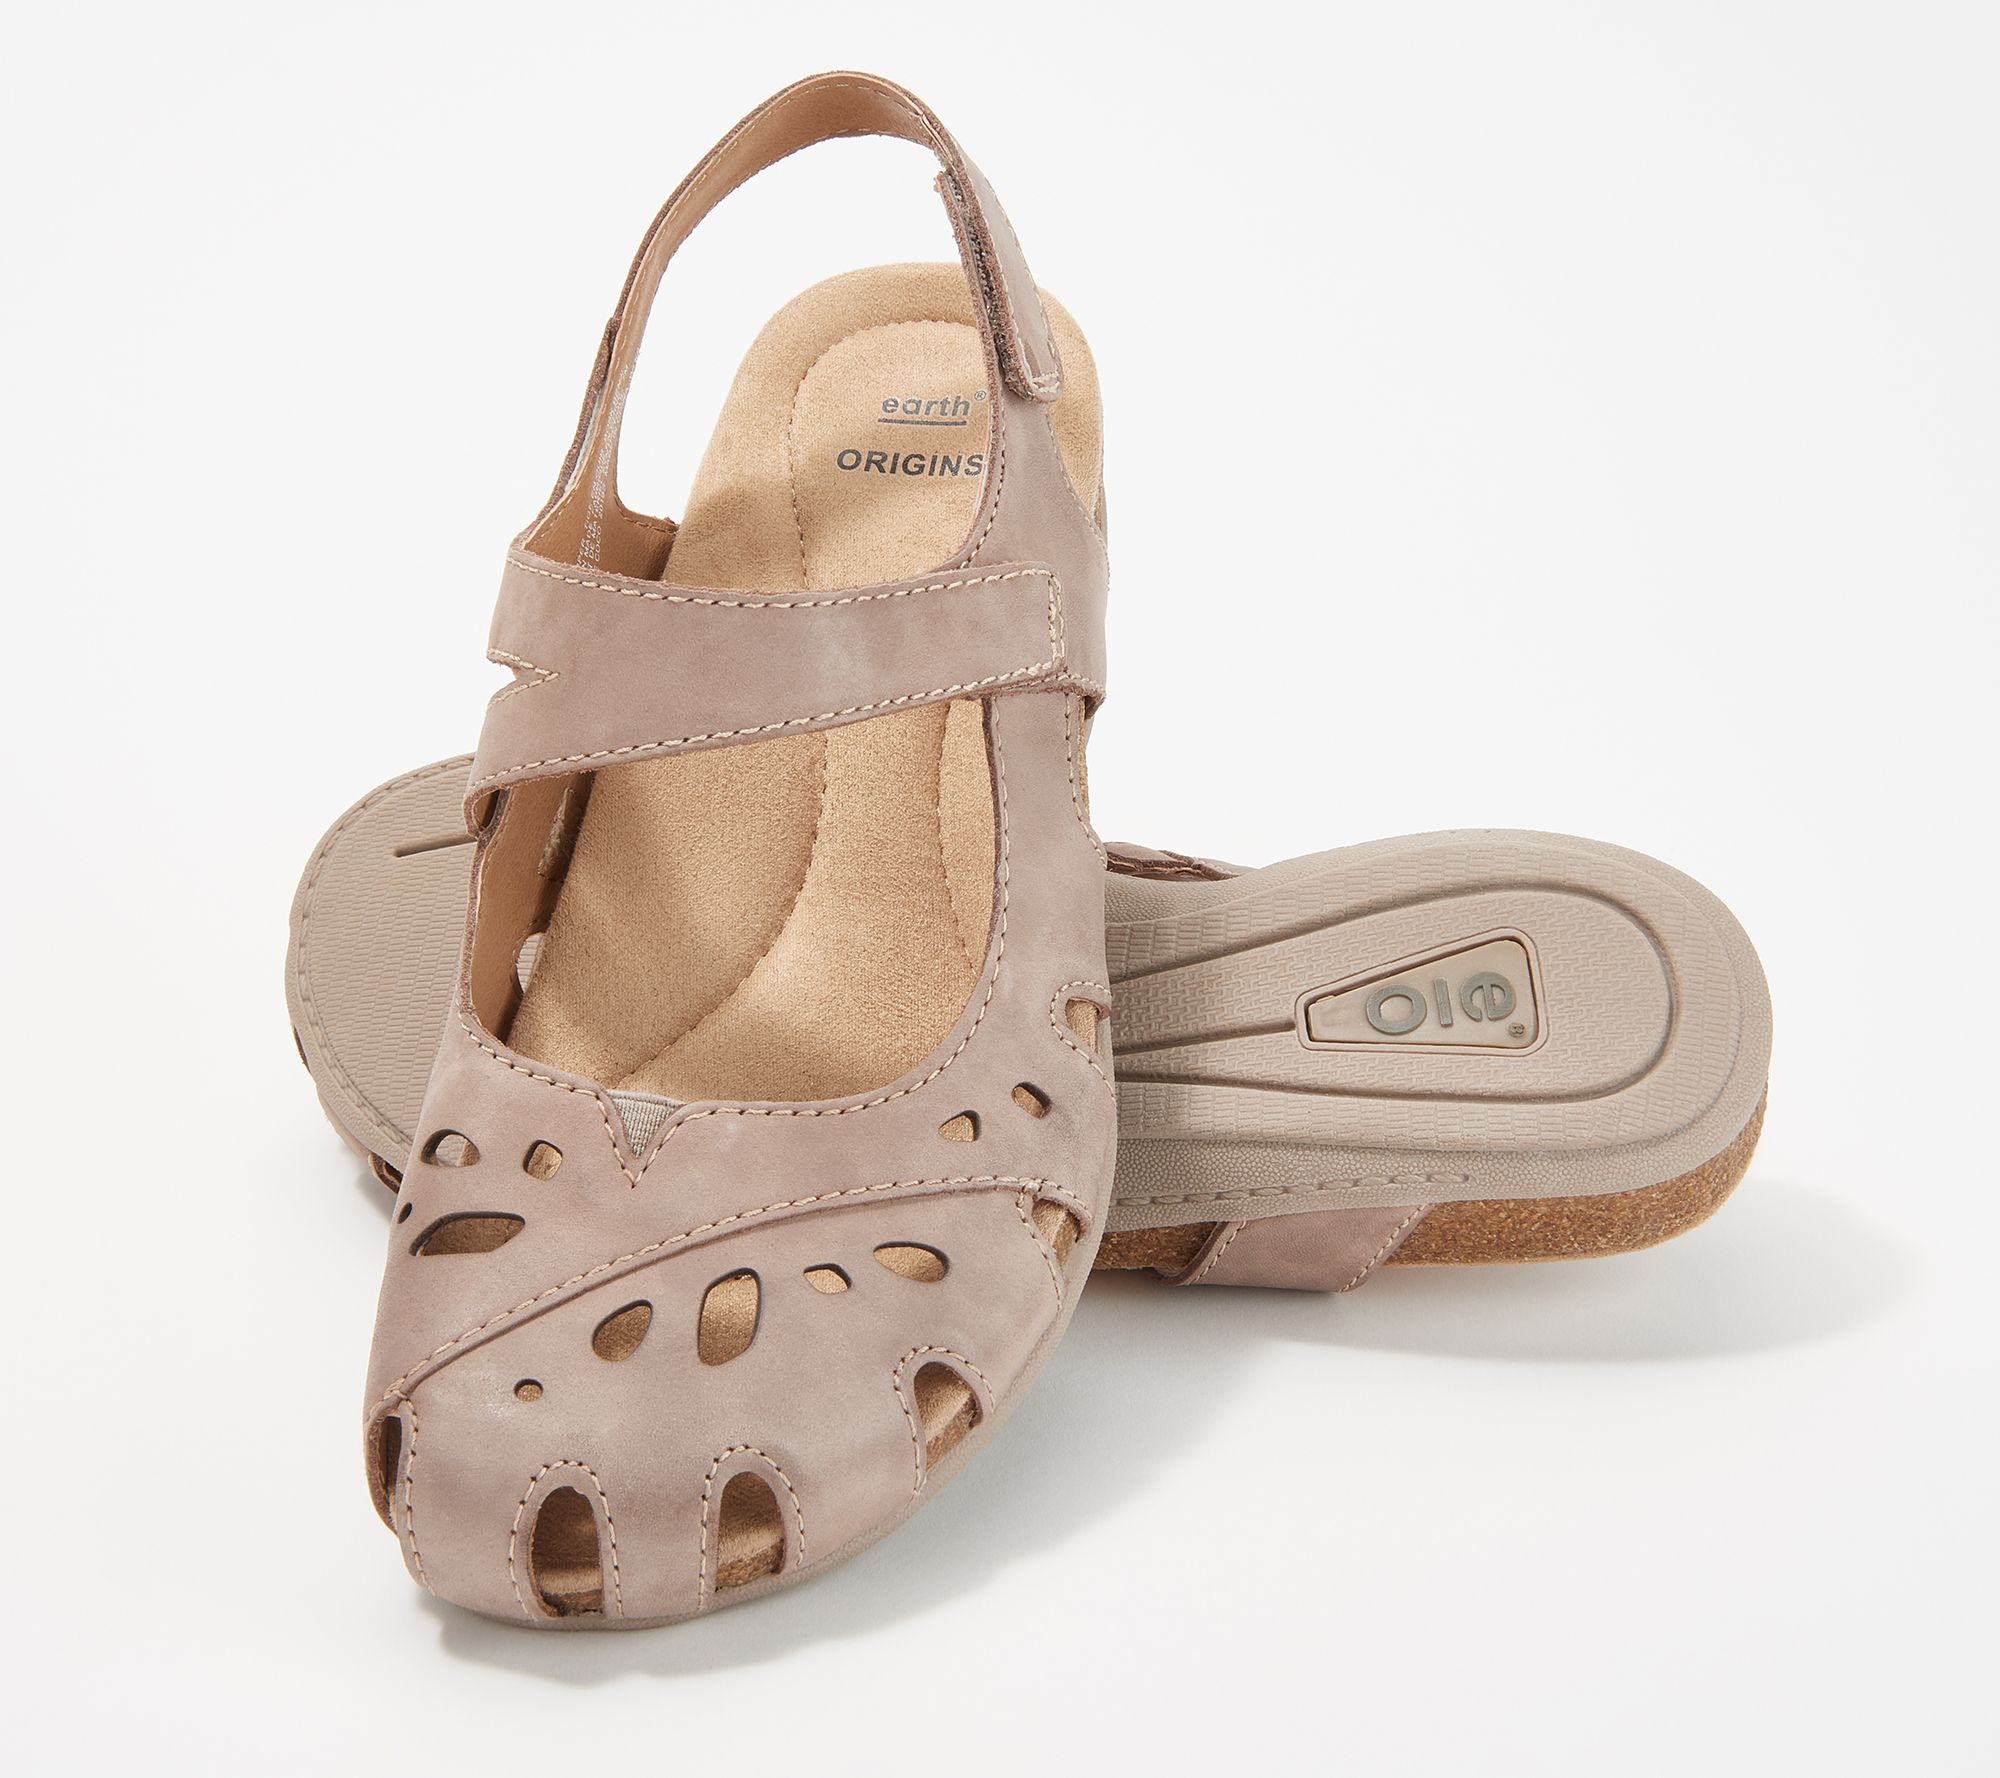 8a6ba4d0f675 Earth Origins Leather Mary Janes with Backstrap - Bosk Benji - Page 1 —  QVC.com